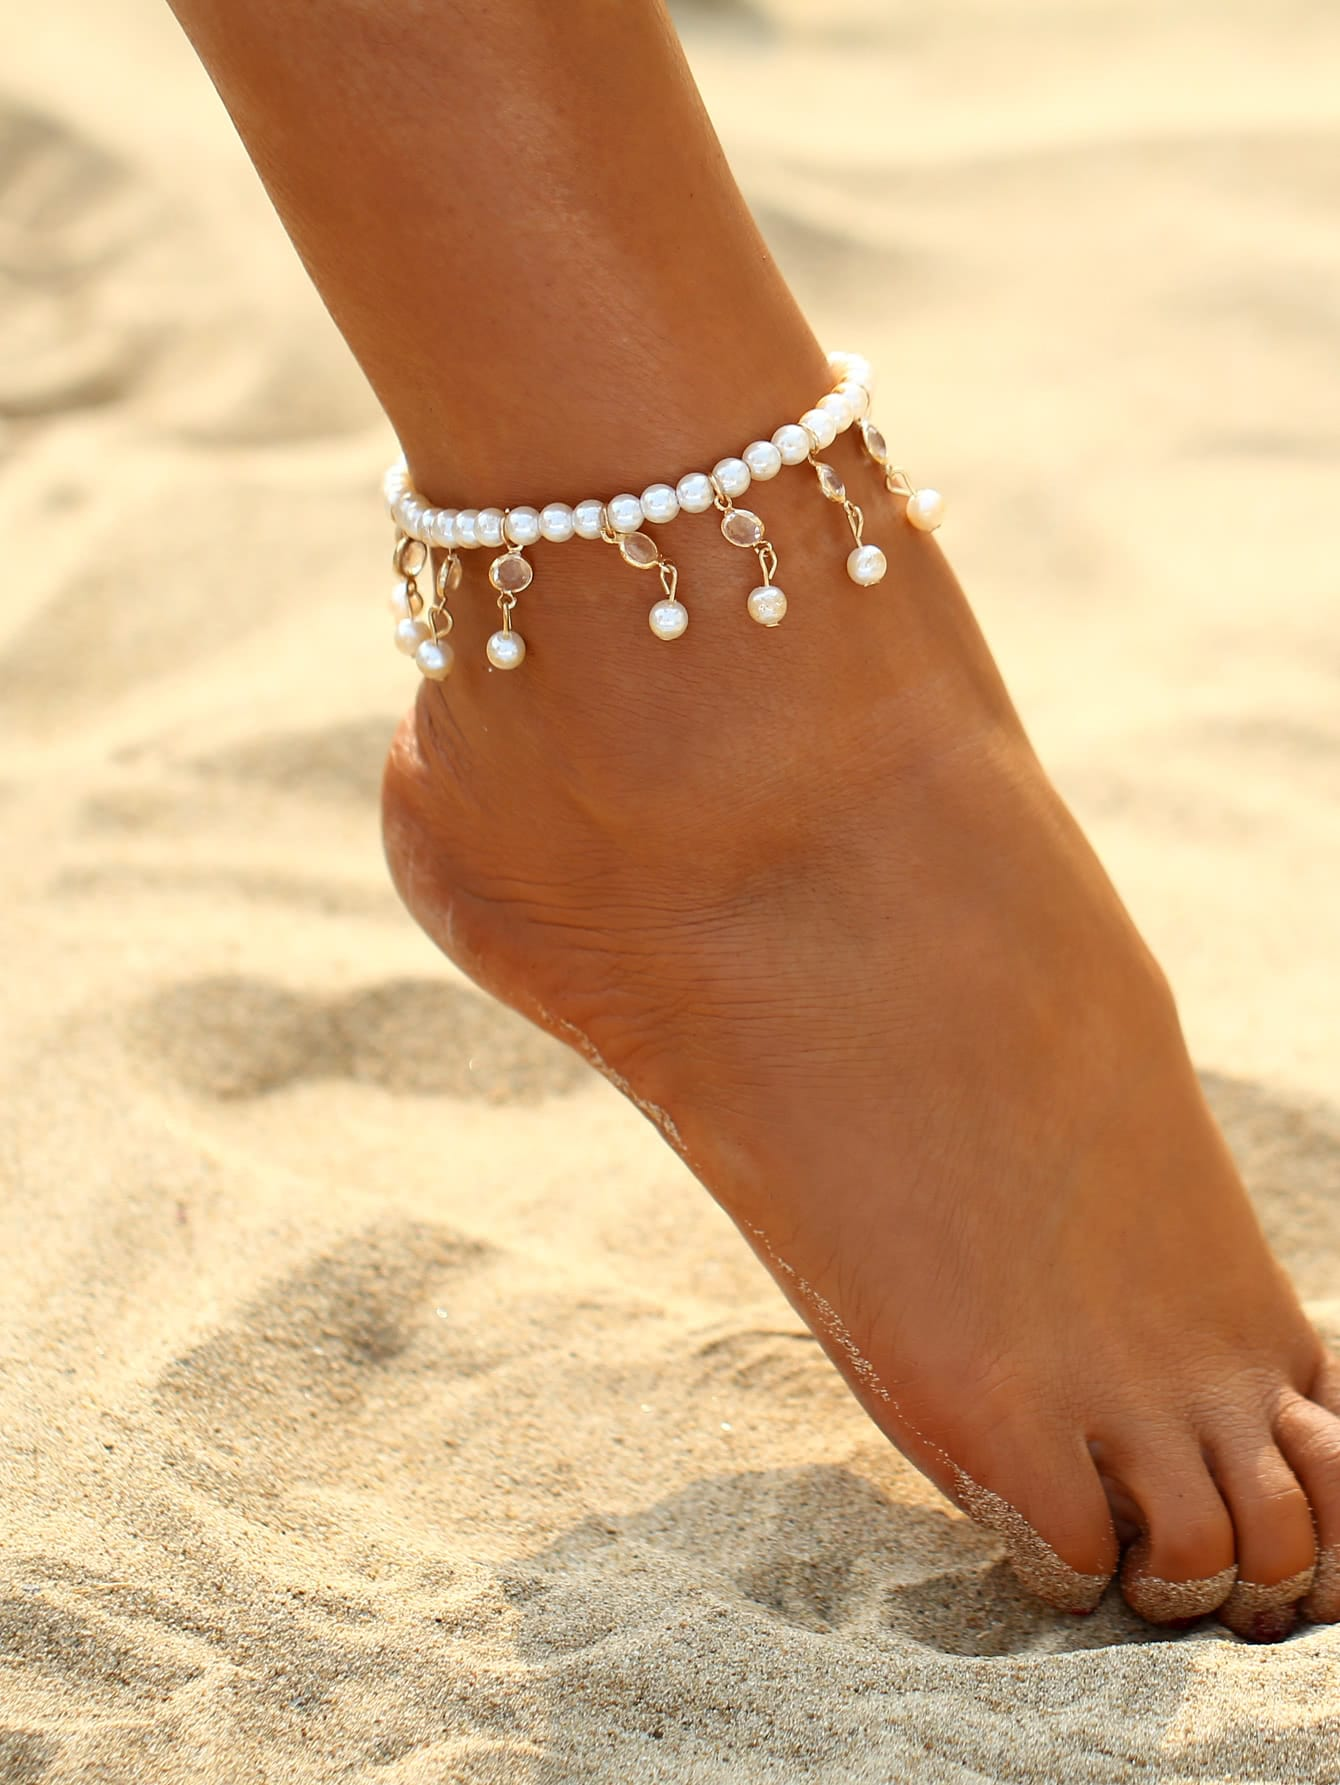 Faux Pearl & Crystal Decorated Beaded Anklet characteristic faux crystal beads decorated faux pearl embellished barefoot sandal for women (one piece